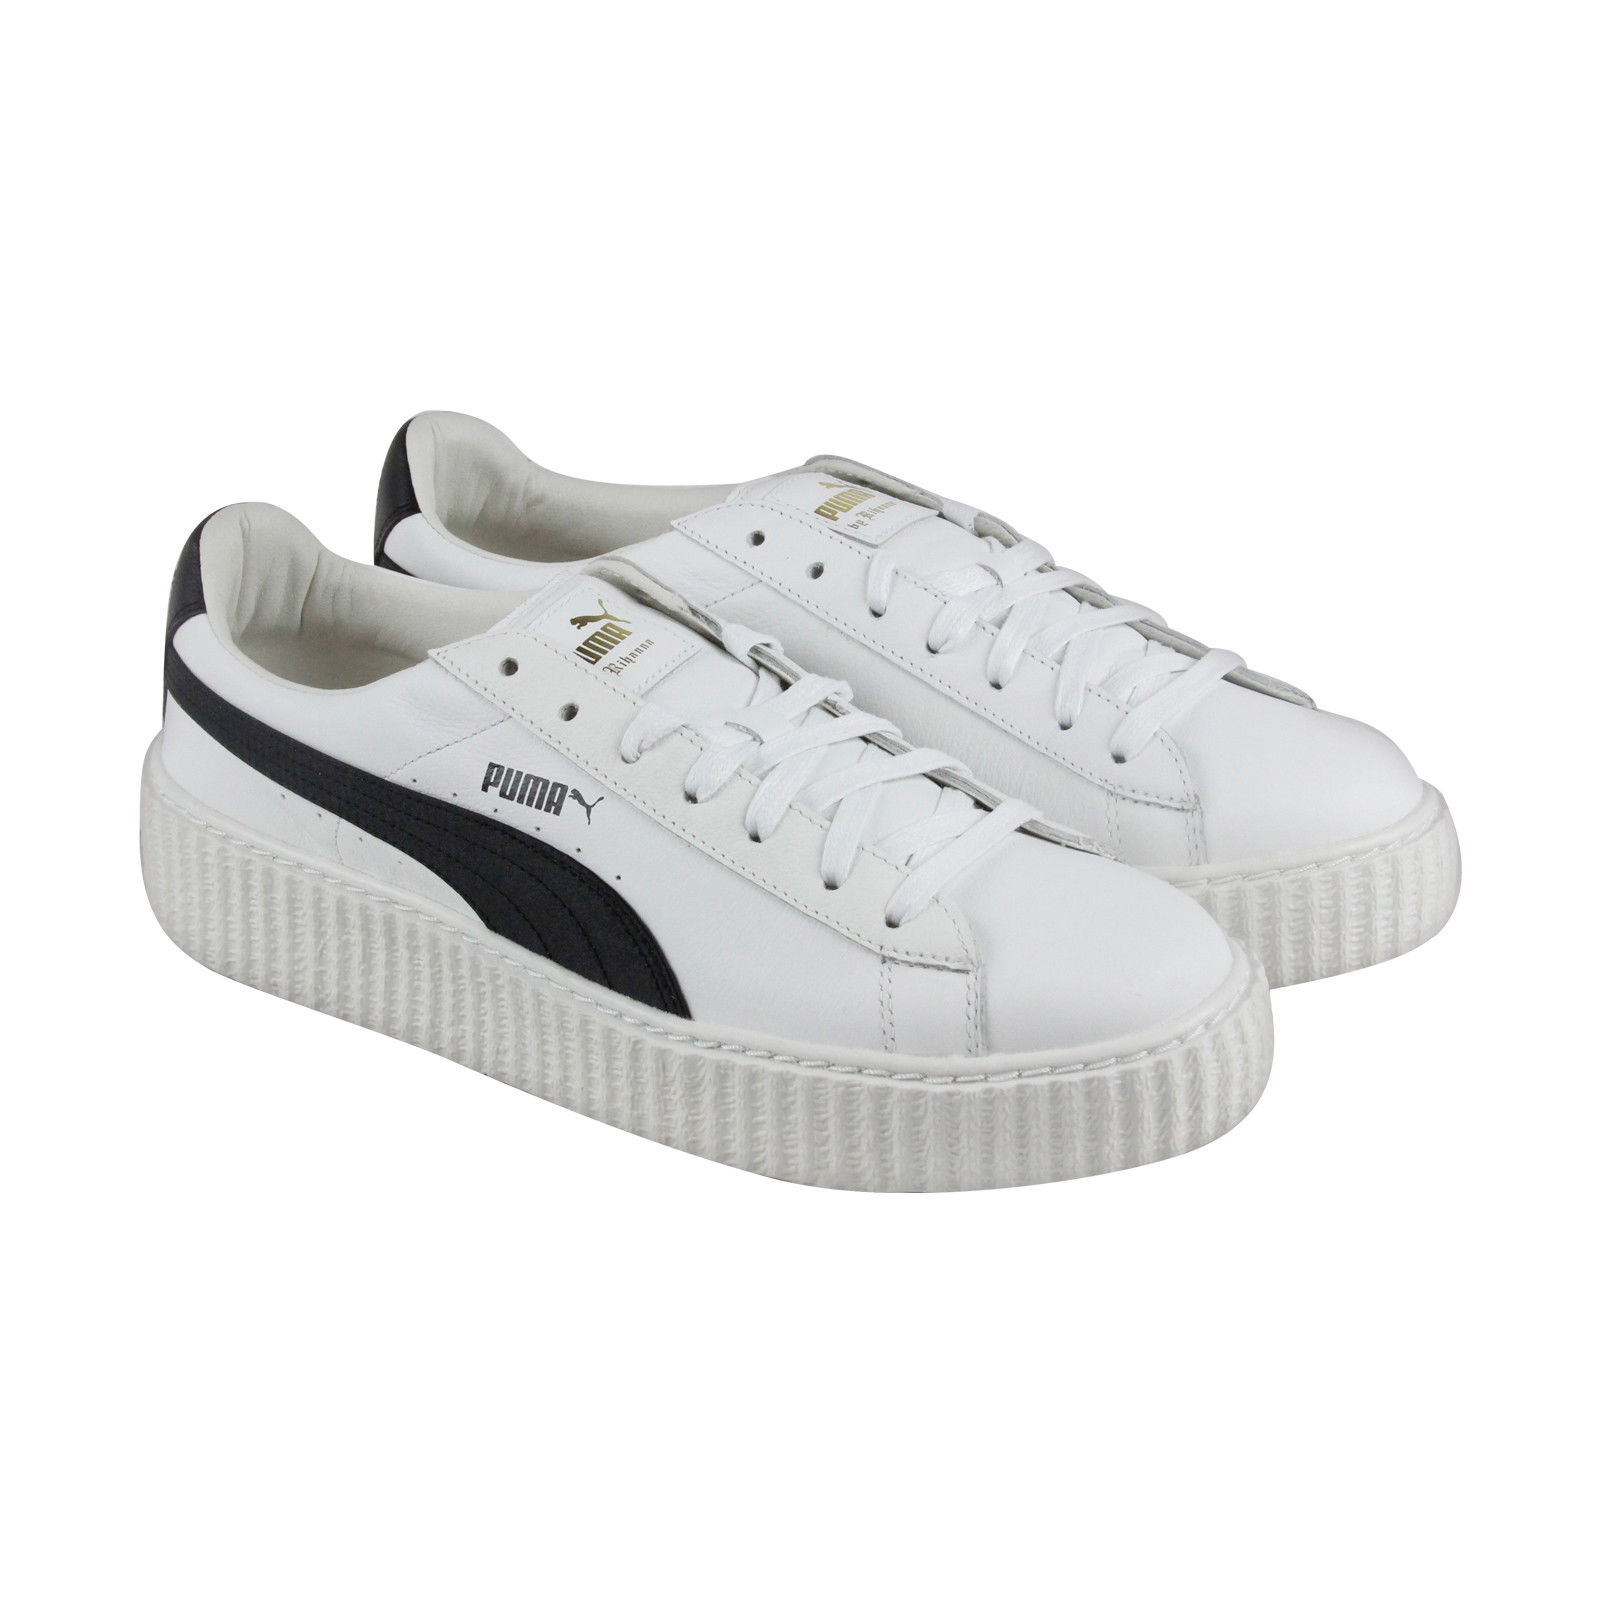 Puma Mens Fenty by Rihanna White Creeper 36464001 Sneakers Shoes